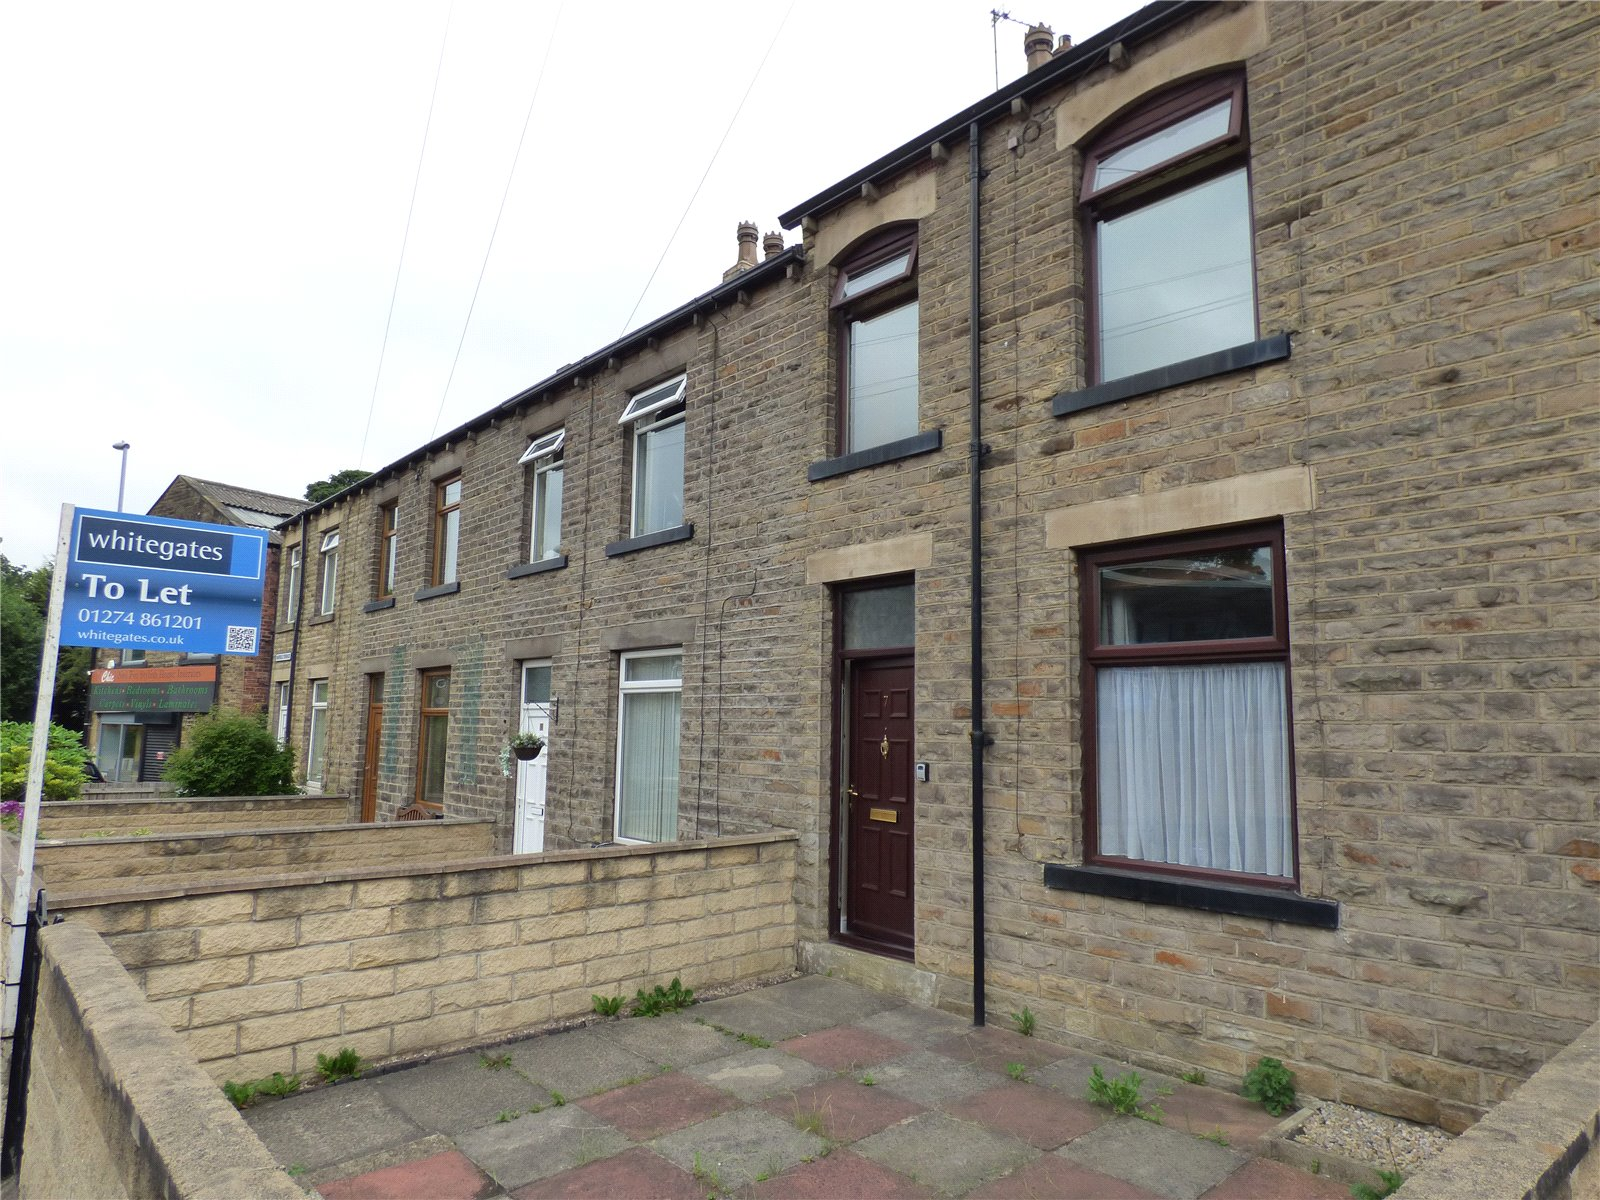 Yorkshire Terrace: Whitegates Cleckheaton 2 Bedroom House Let Agreed In